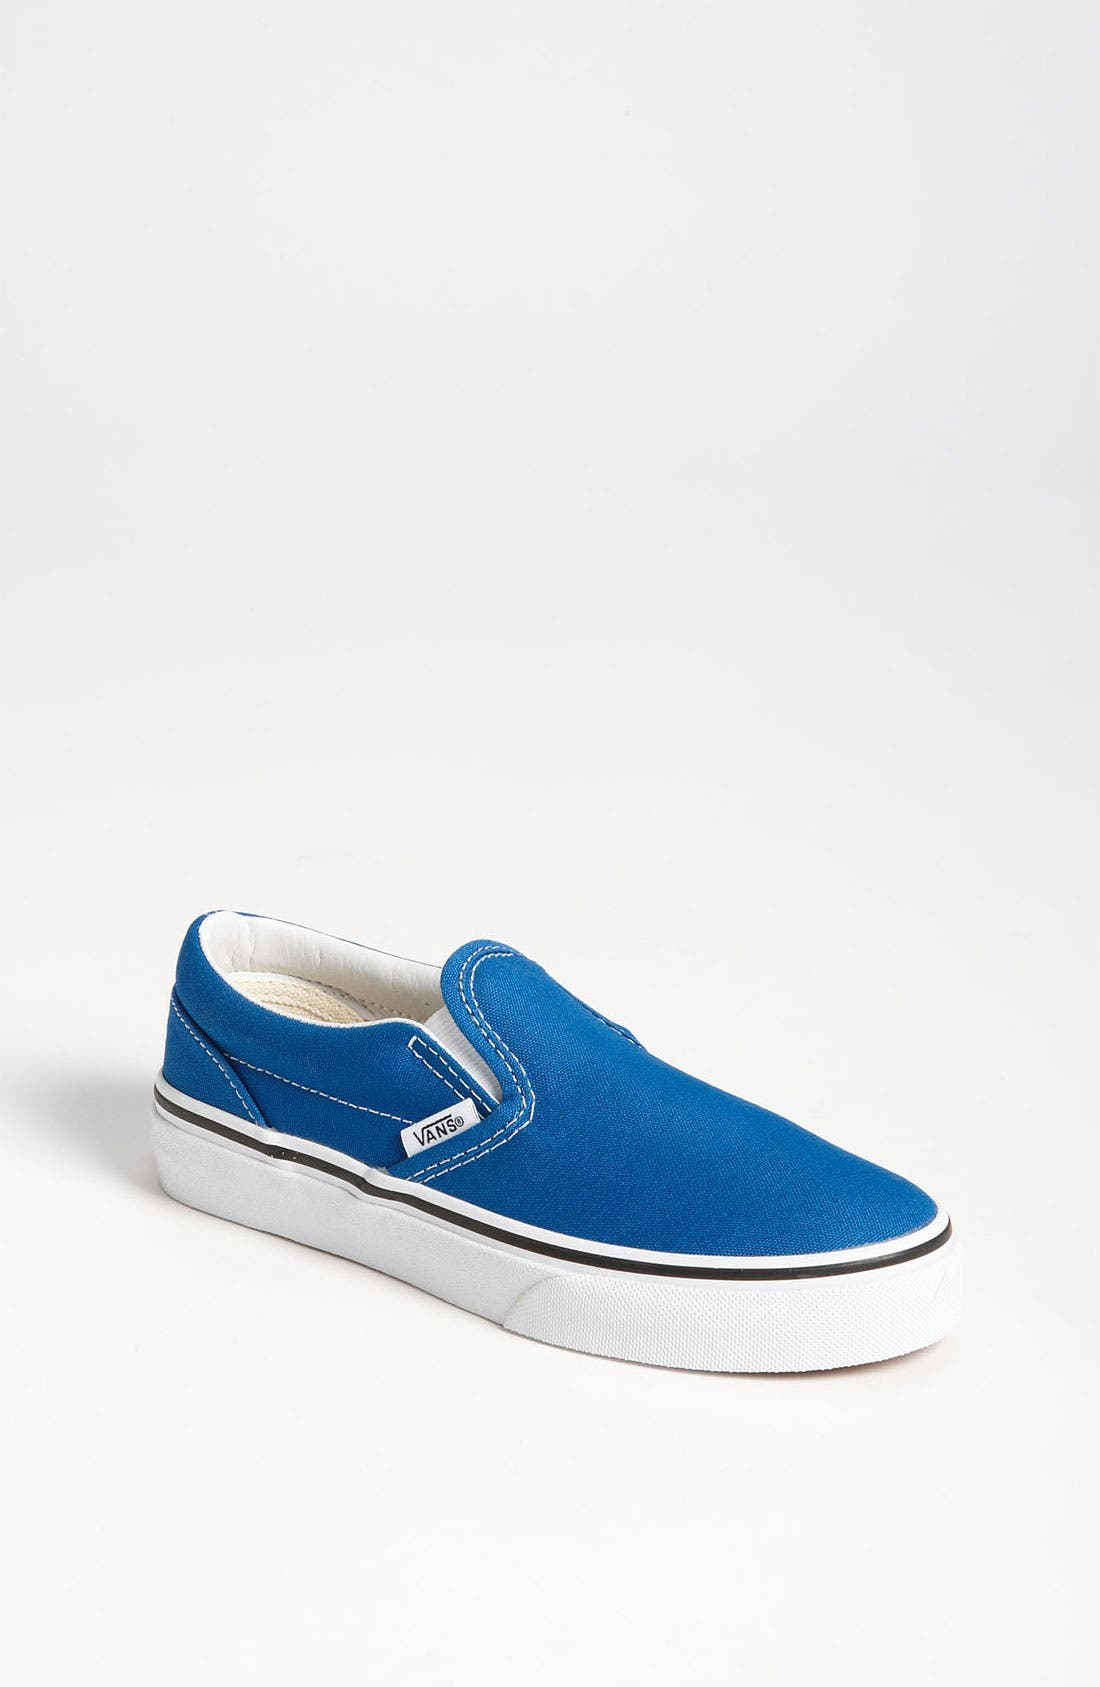 Alternate Image 1 Selected - Vans 'Classic' Slip-On (Toddler, Little Kid & Big Kid)